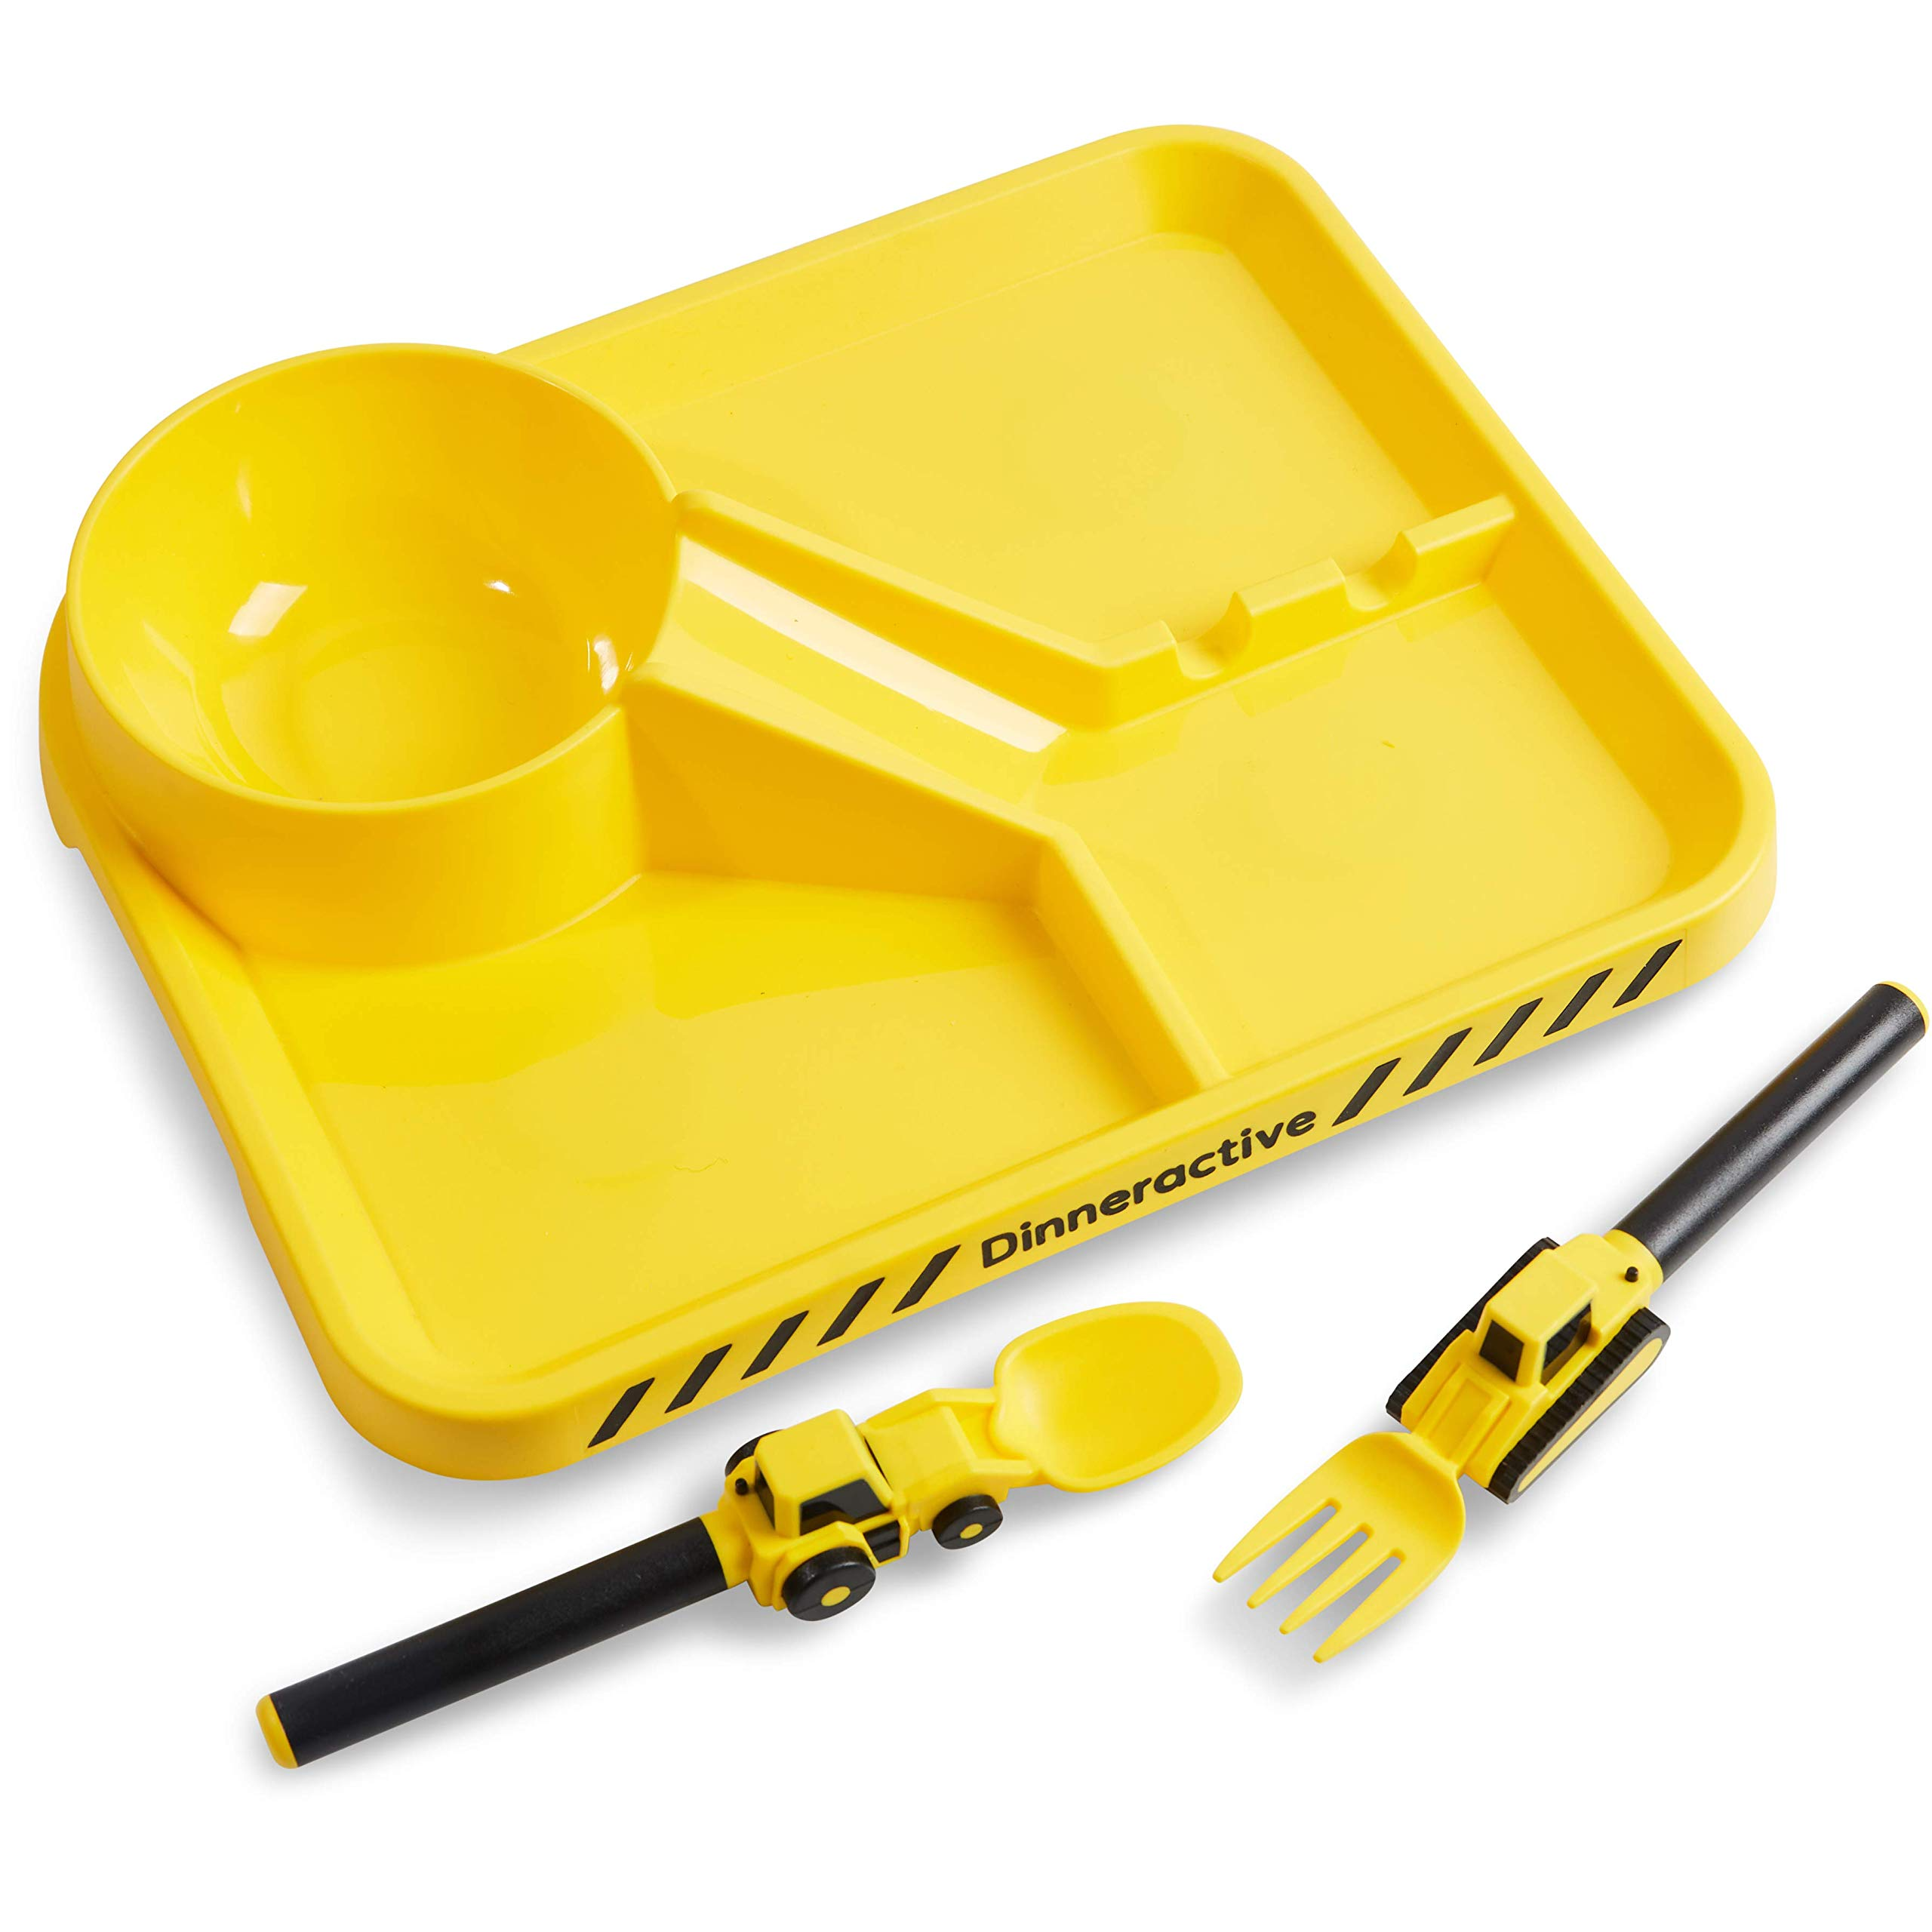 Dinneractive Dining Set for Kids – Construction Themed Meal Tray, Fork and Spoon for Toddlers and Young Children – 3-Piece Set